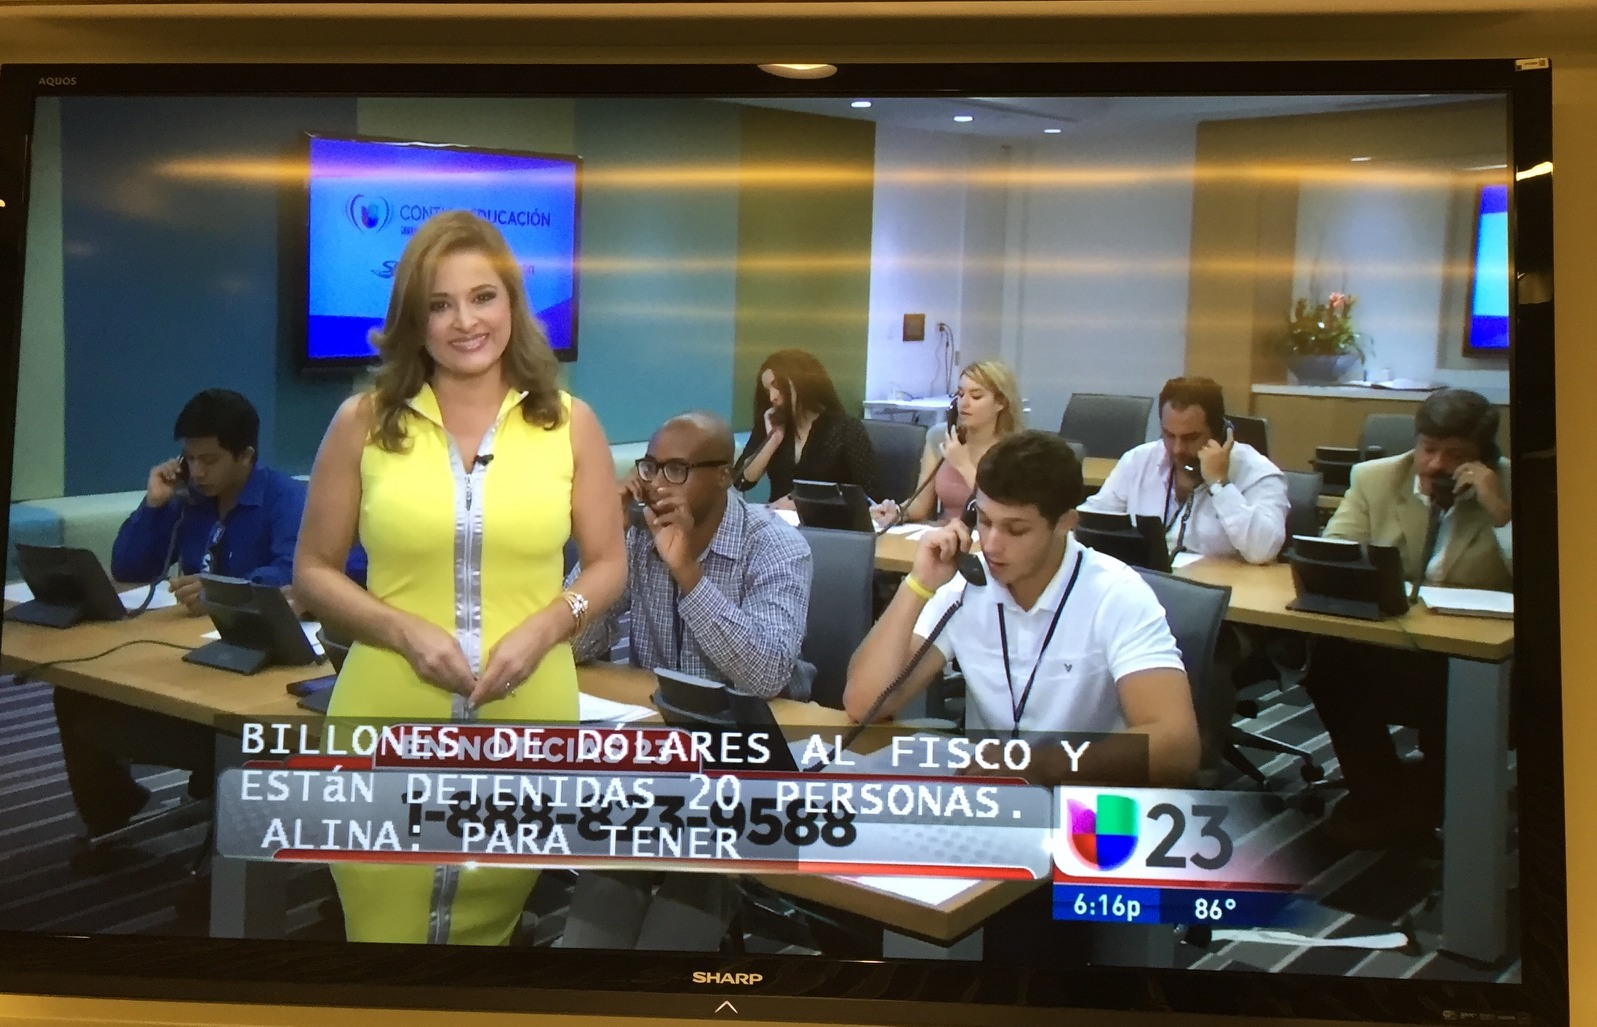 Informing our community of technology opportunitites 20150903 Univision Phone Bank